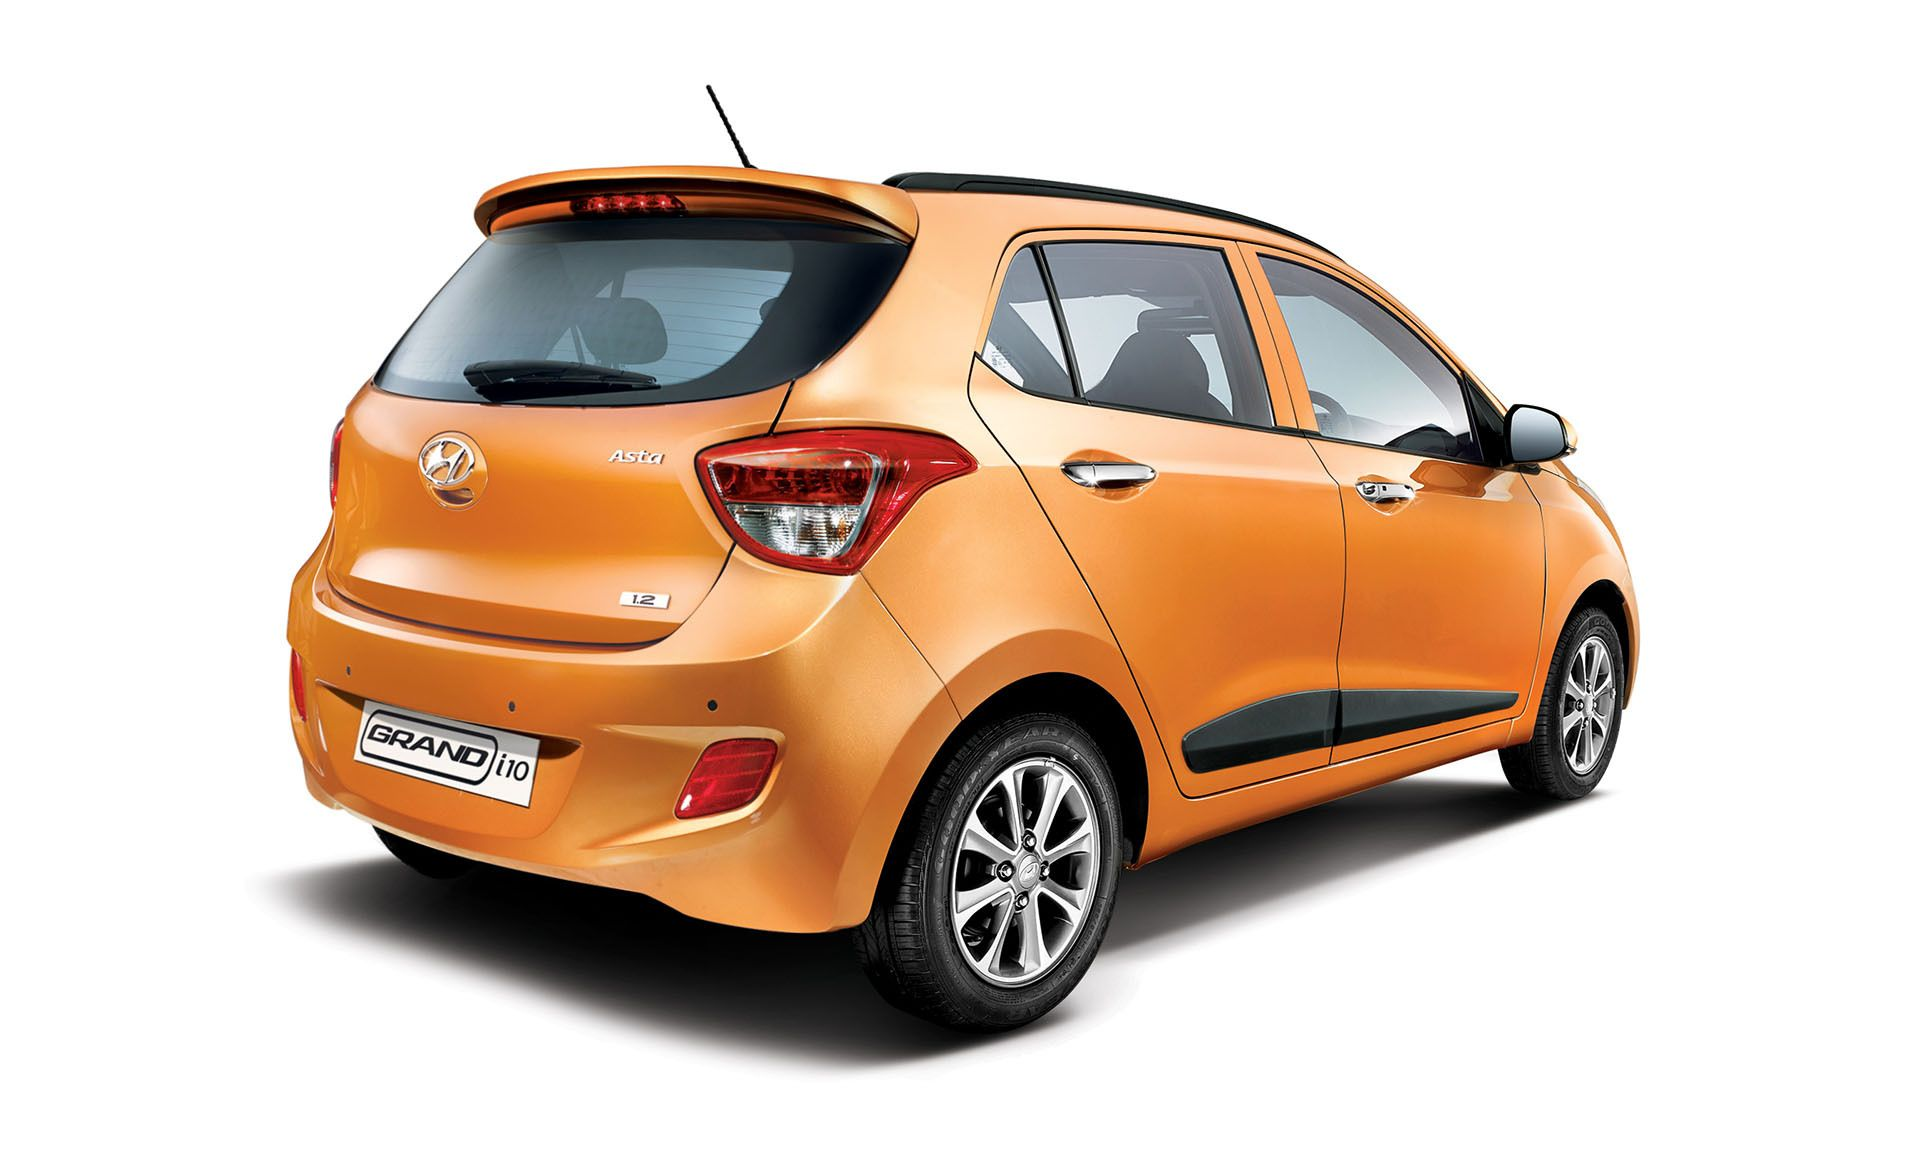 undefined Hyundai I10 Wallpapers (43 Wallpapers) | Adorable ...